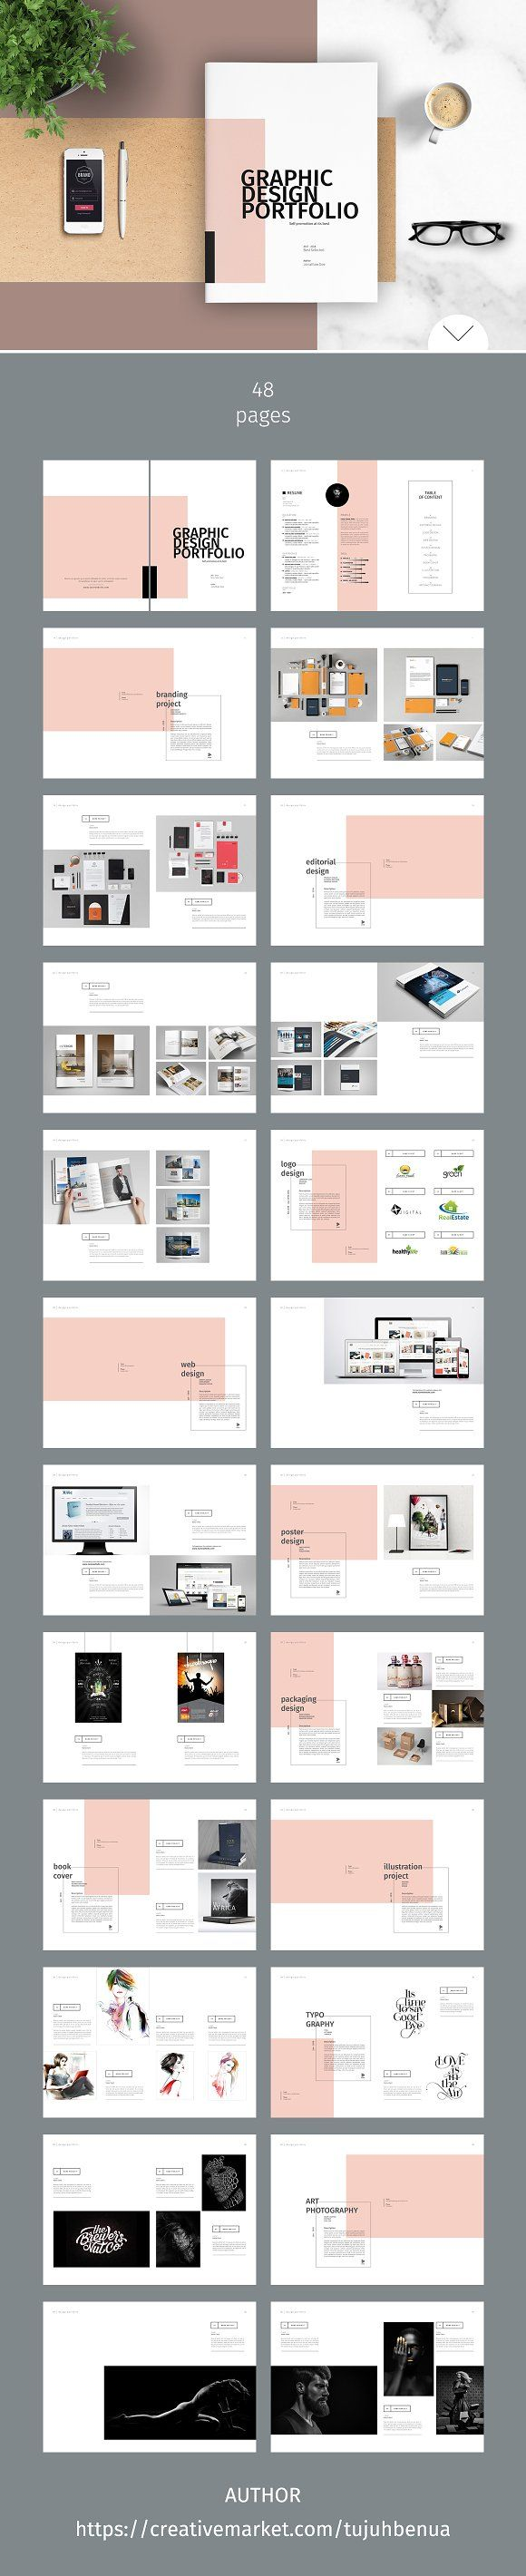 Best 25 portfolio layout ideas on pinterest portfolio for Interior design portfolio layout ideas